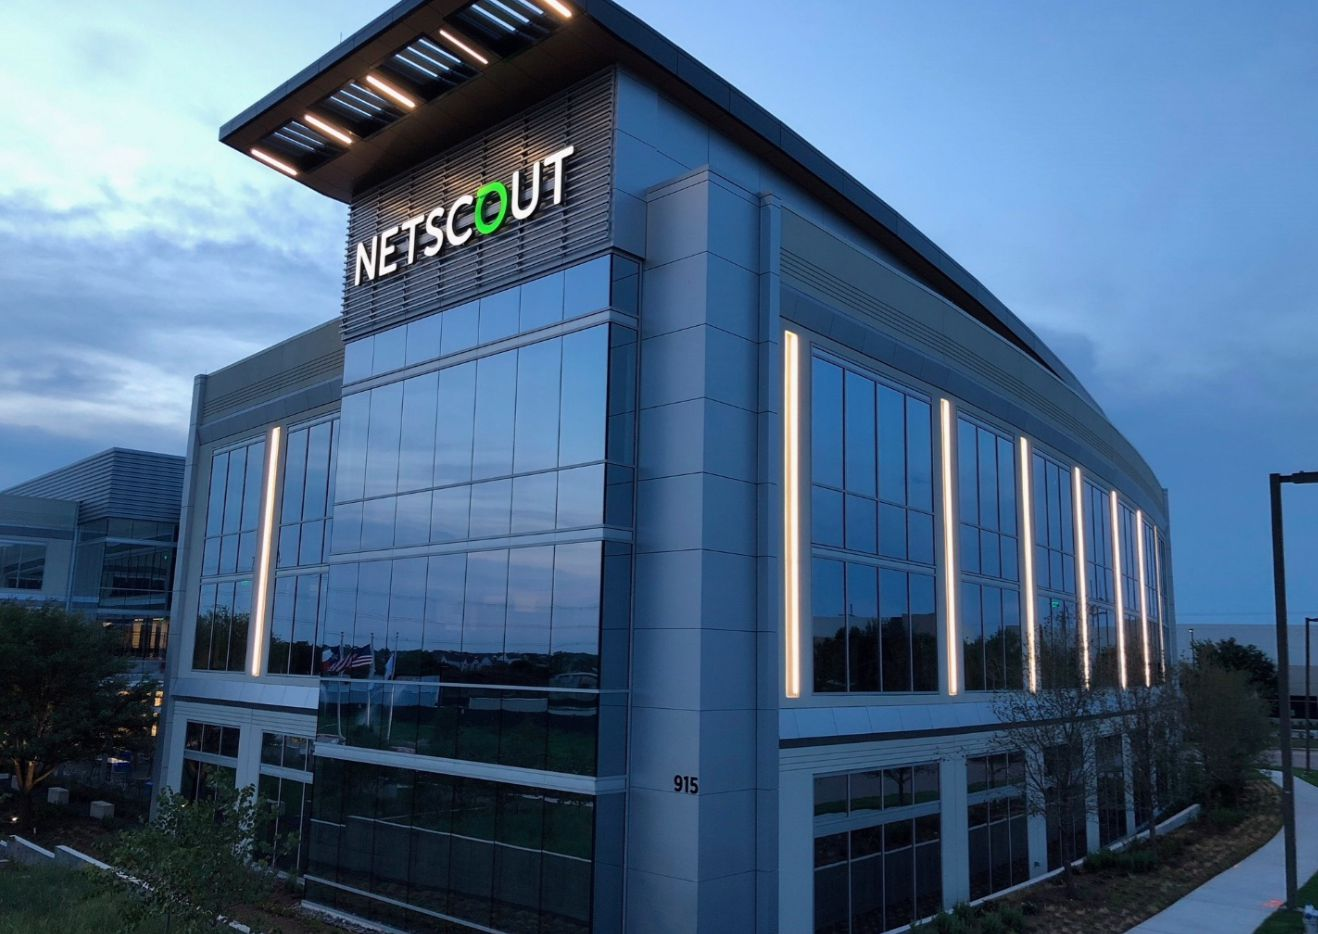 Netscout Systems has relocated to a new building on Bethany Drive near U.S. Highway 75.